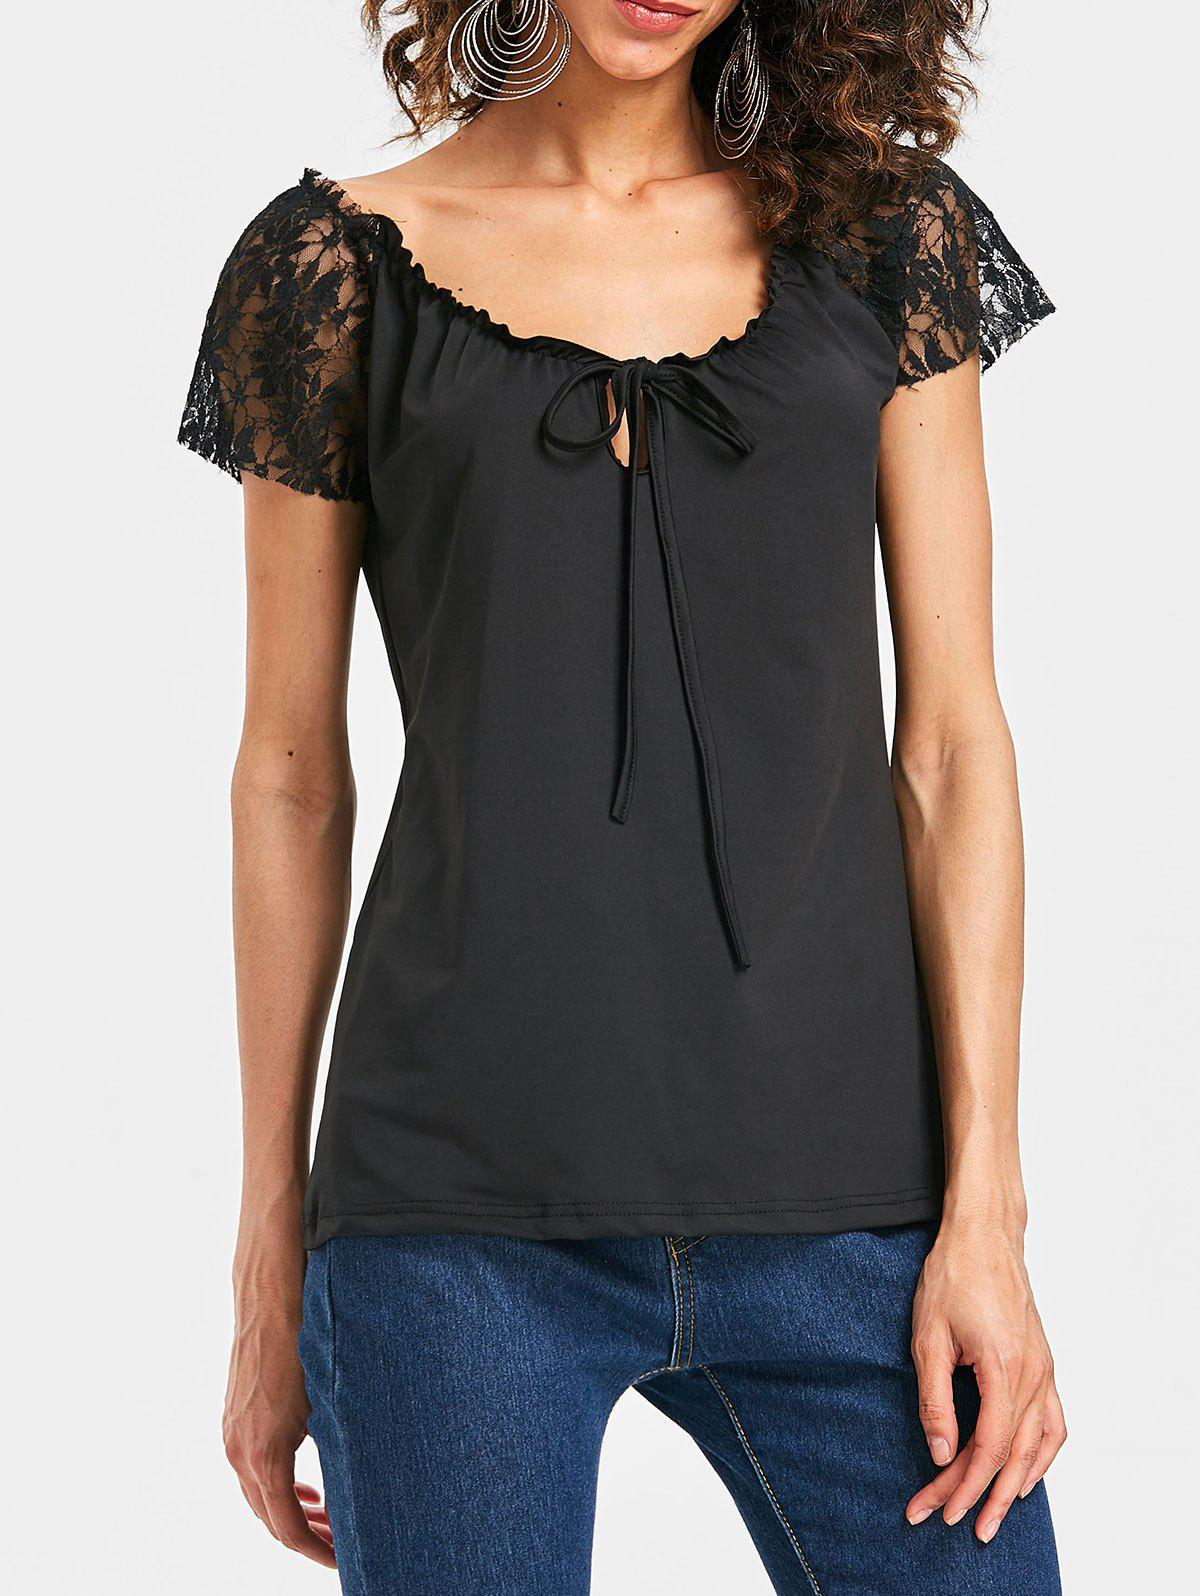 Scoop Neck Lace Insert T-shirt - BLACK M